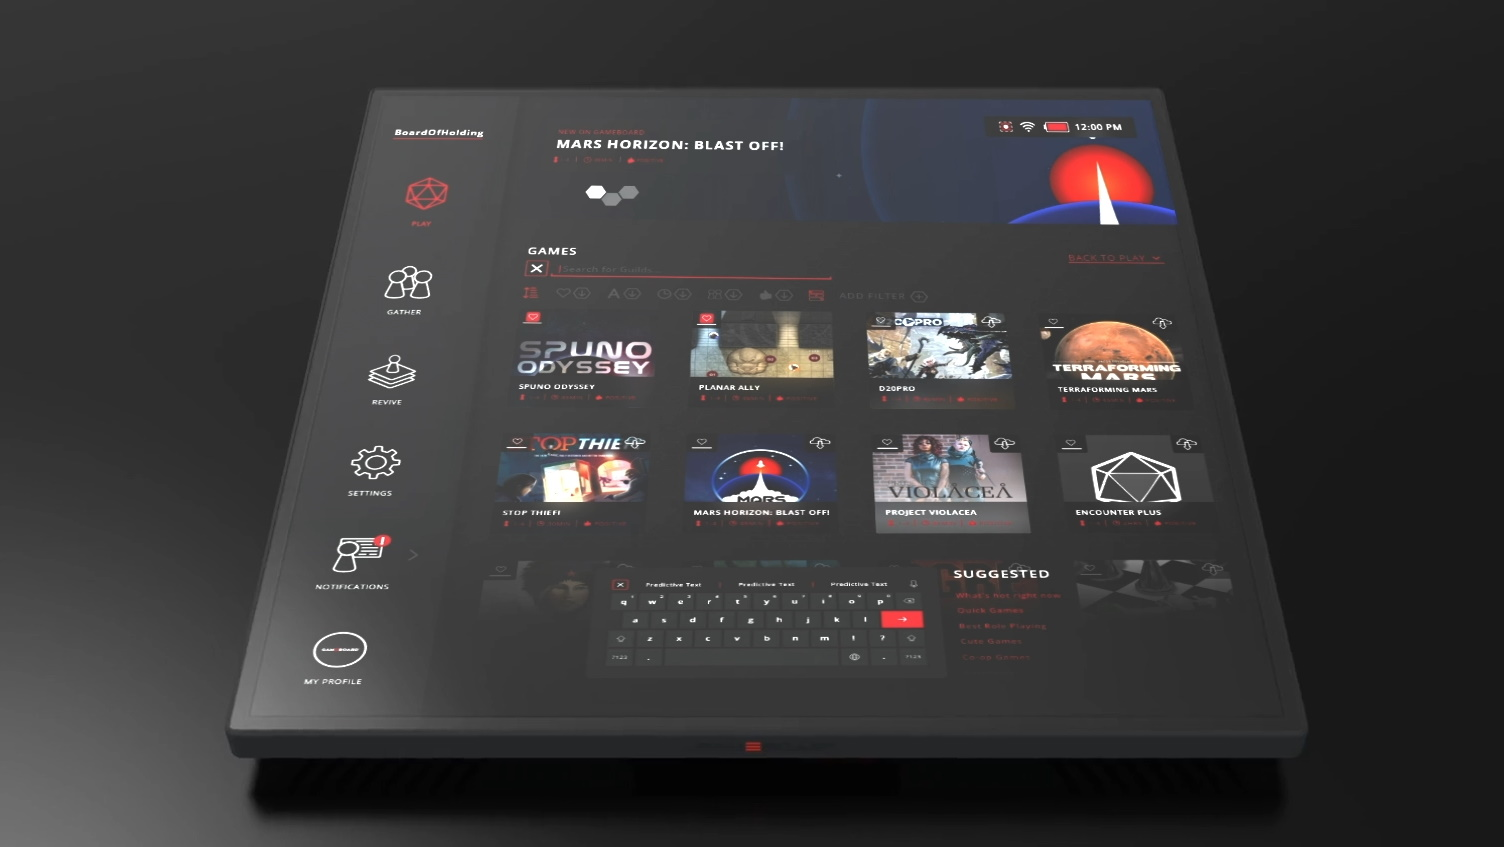 The Last Gameboard's interface, showing games available to play on the tablet's surface.